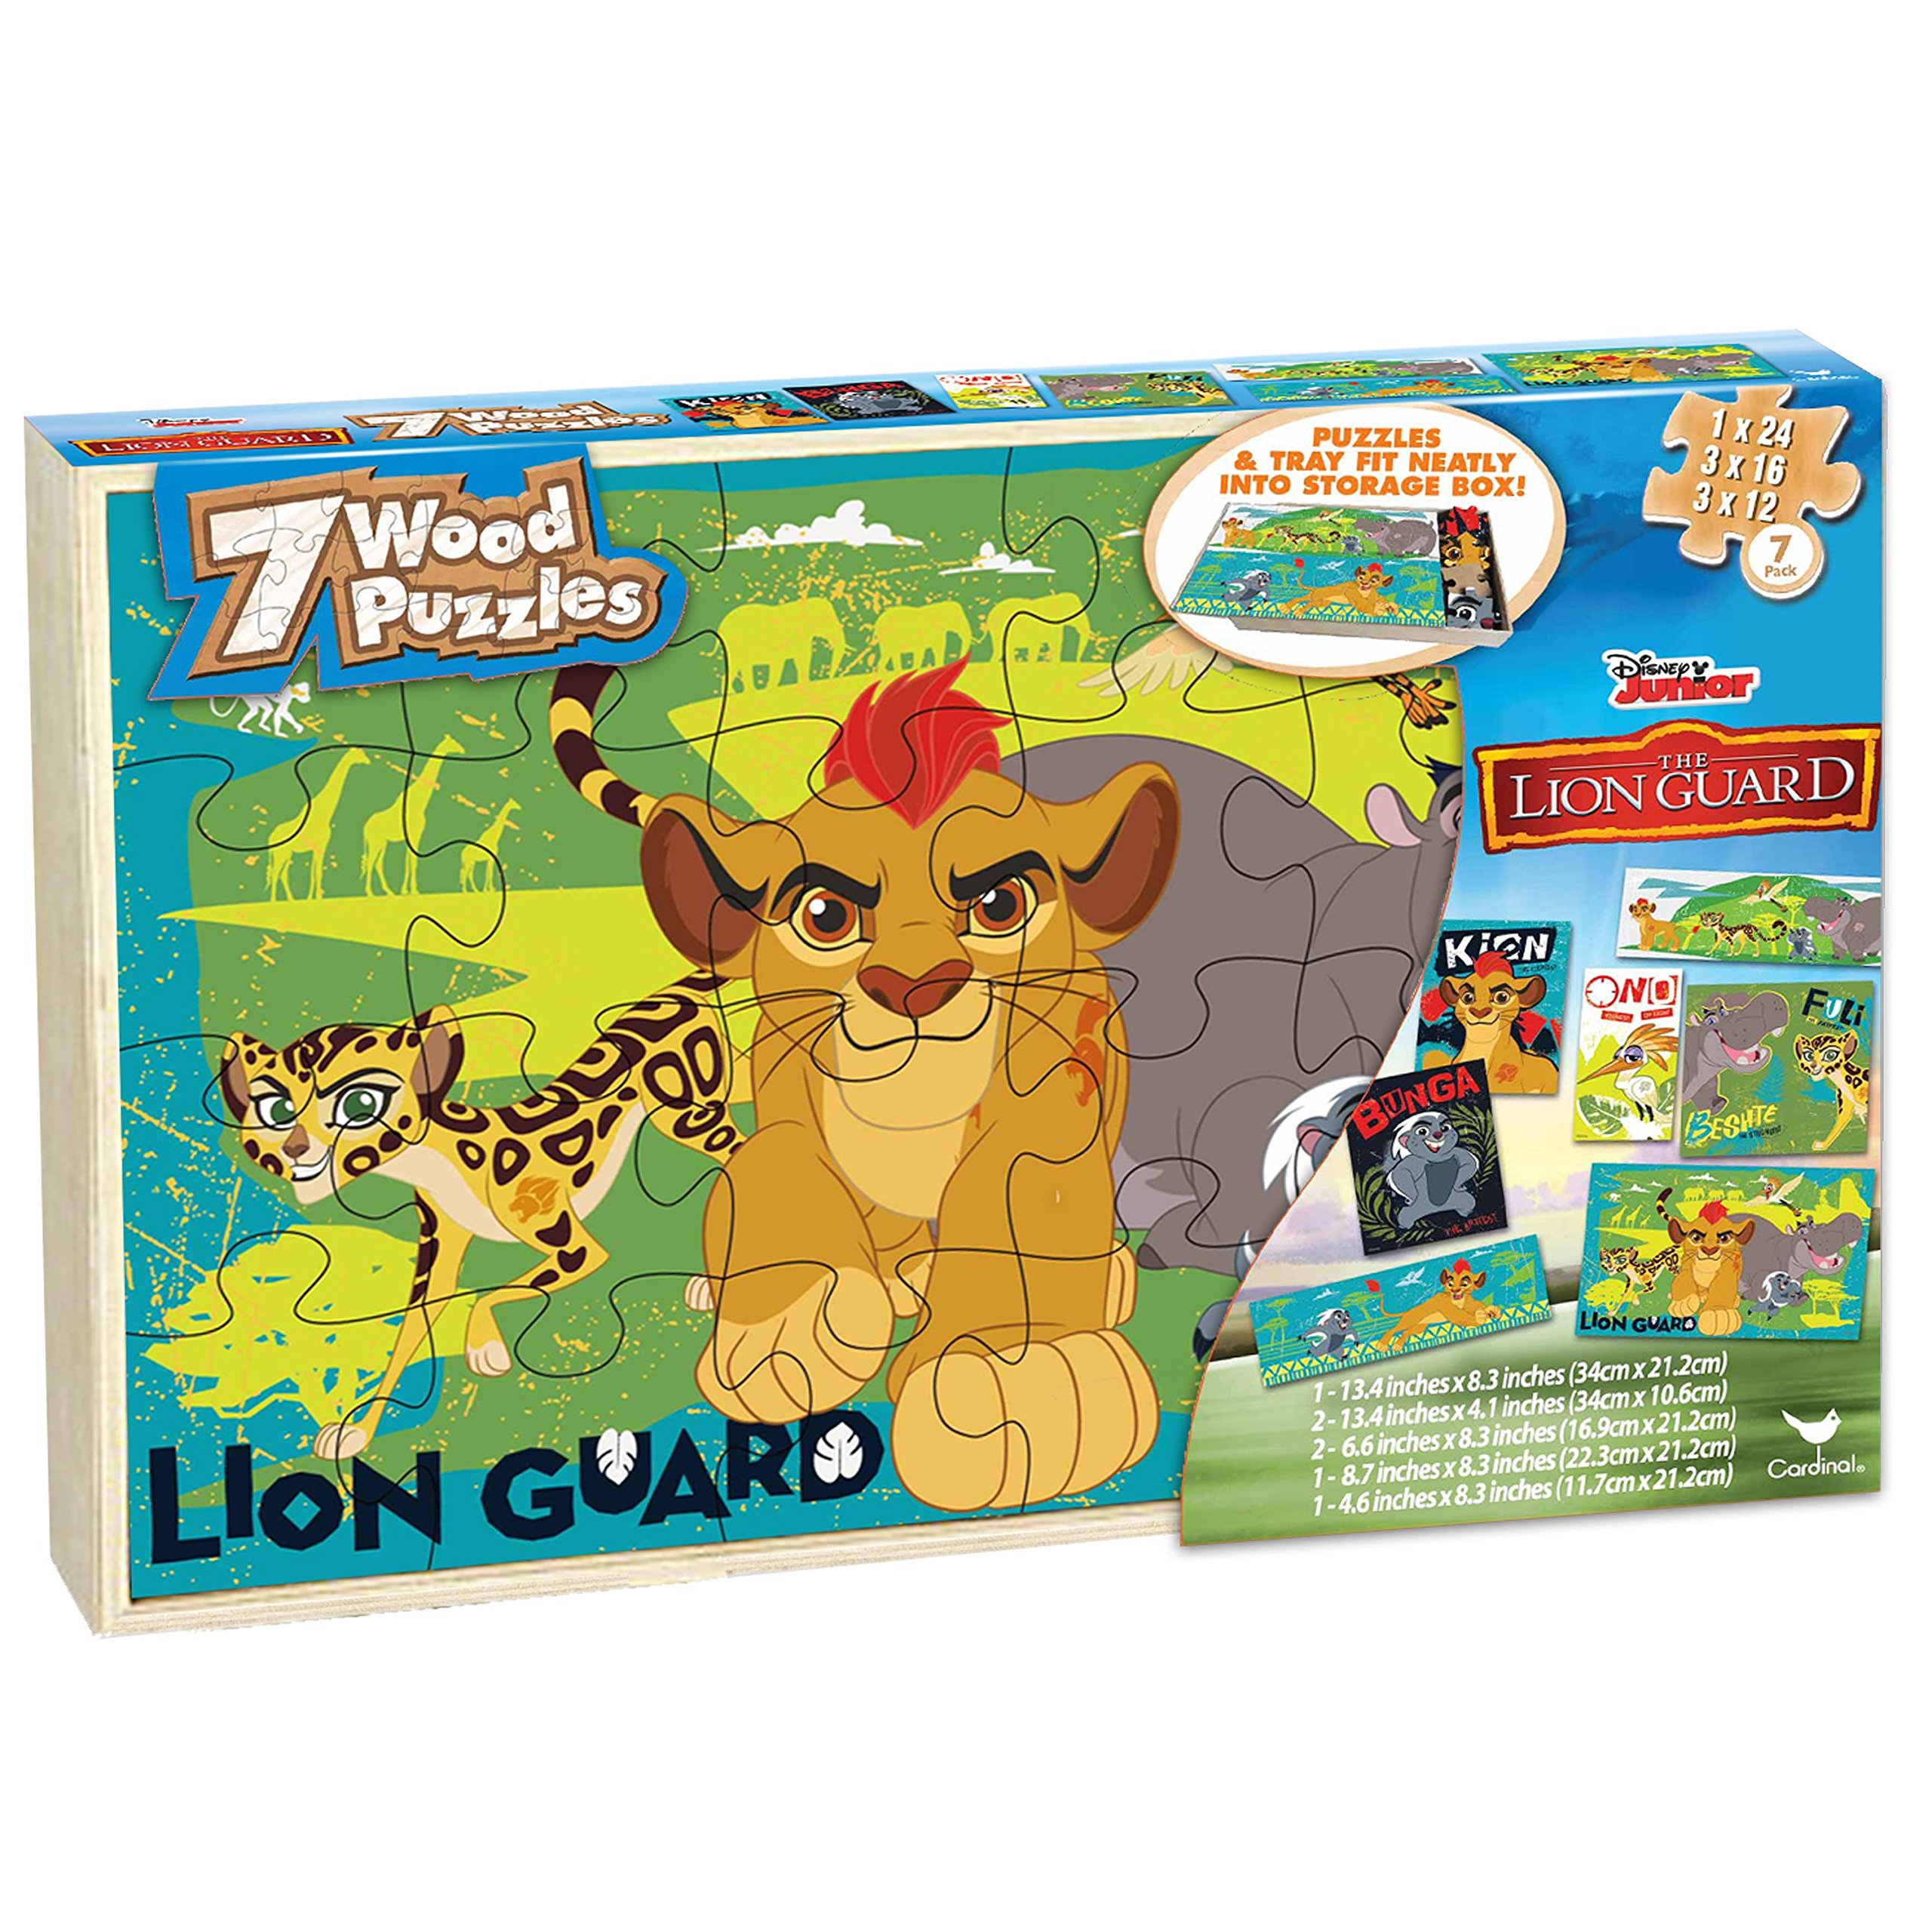 Disney Lion Guard 7 Wood Puzzles In Wooden Storage Box (styles will vary)